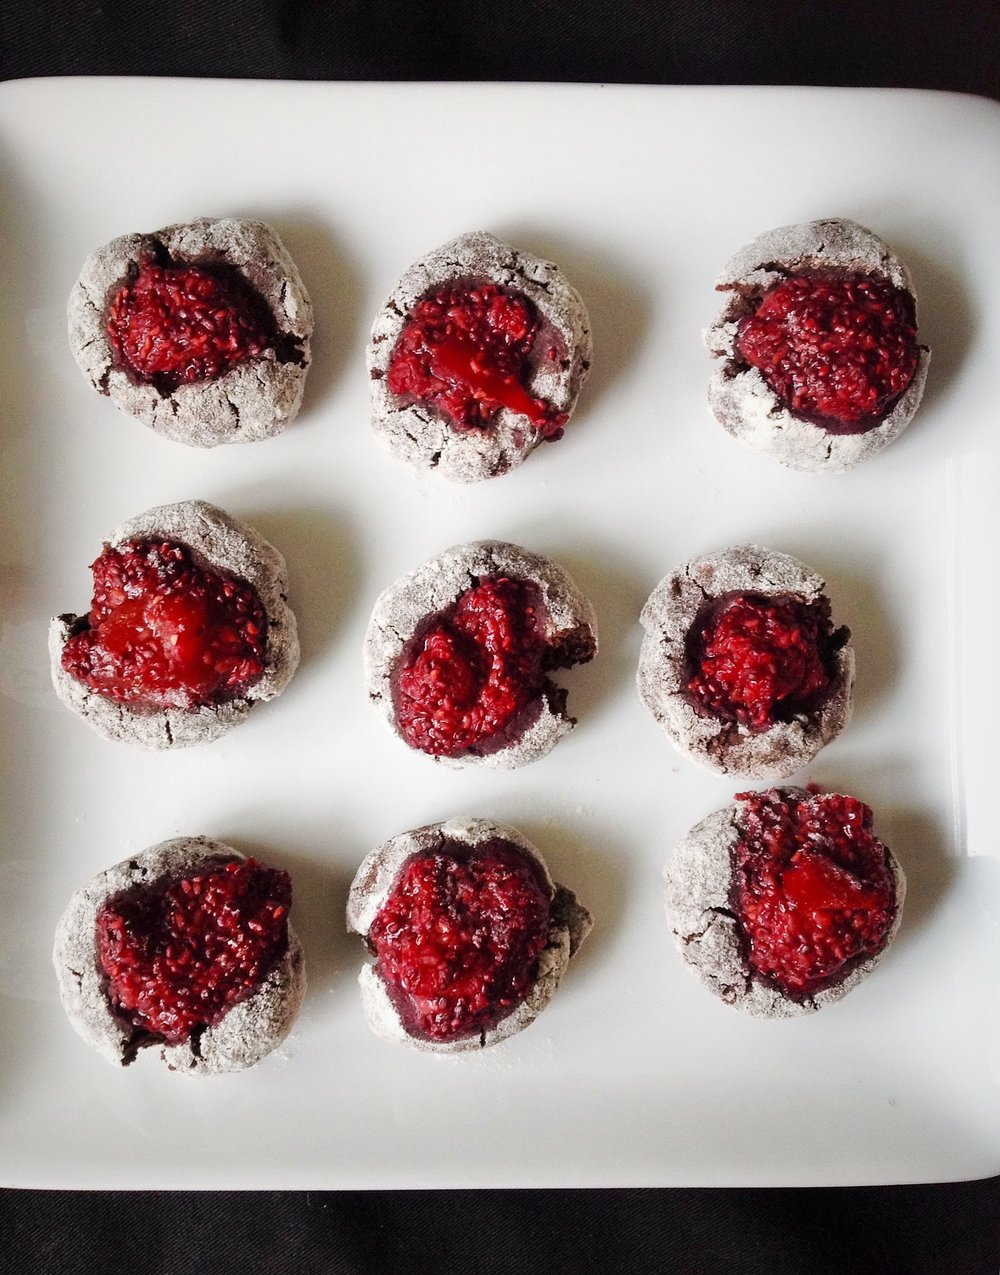 Cocoa Thumbprint Cookies with Raspberry Mango Chia Jam - Healthy, Gluten-Free, Oil-Free, No Refined Sugar, Plant-Based, Vegan